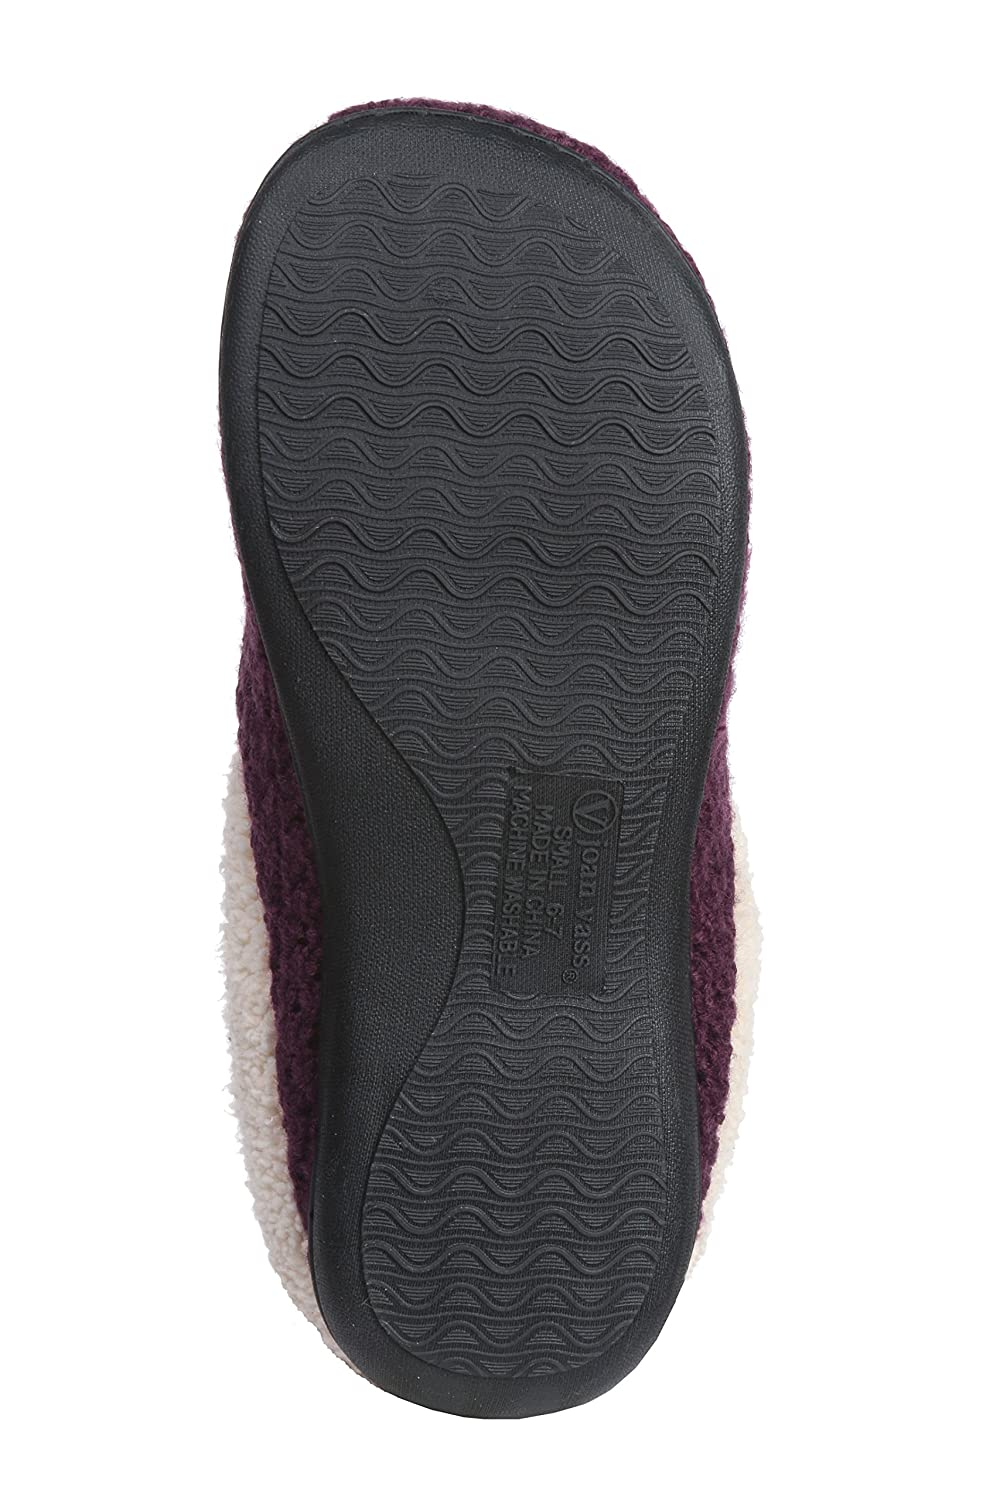 Roxoni Women's Fleece Lined Knit Winter Slippers; A Ladies Warming Indoor & Outdoor Clog with a Non Slip Rubber Sole 2116